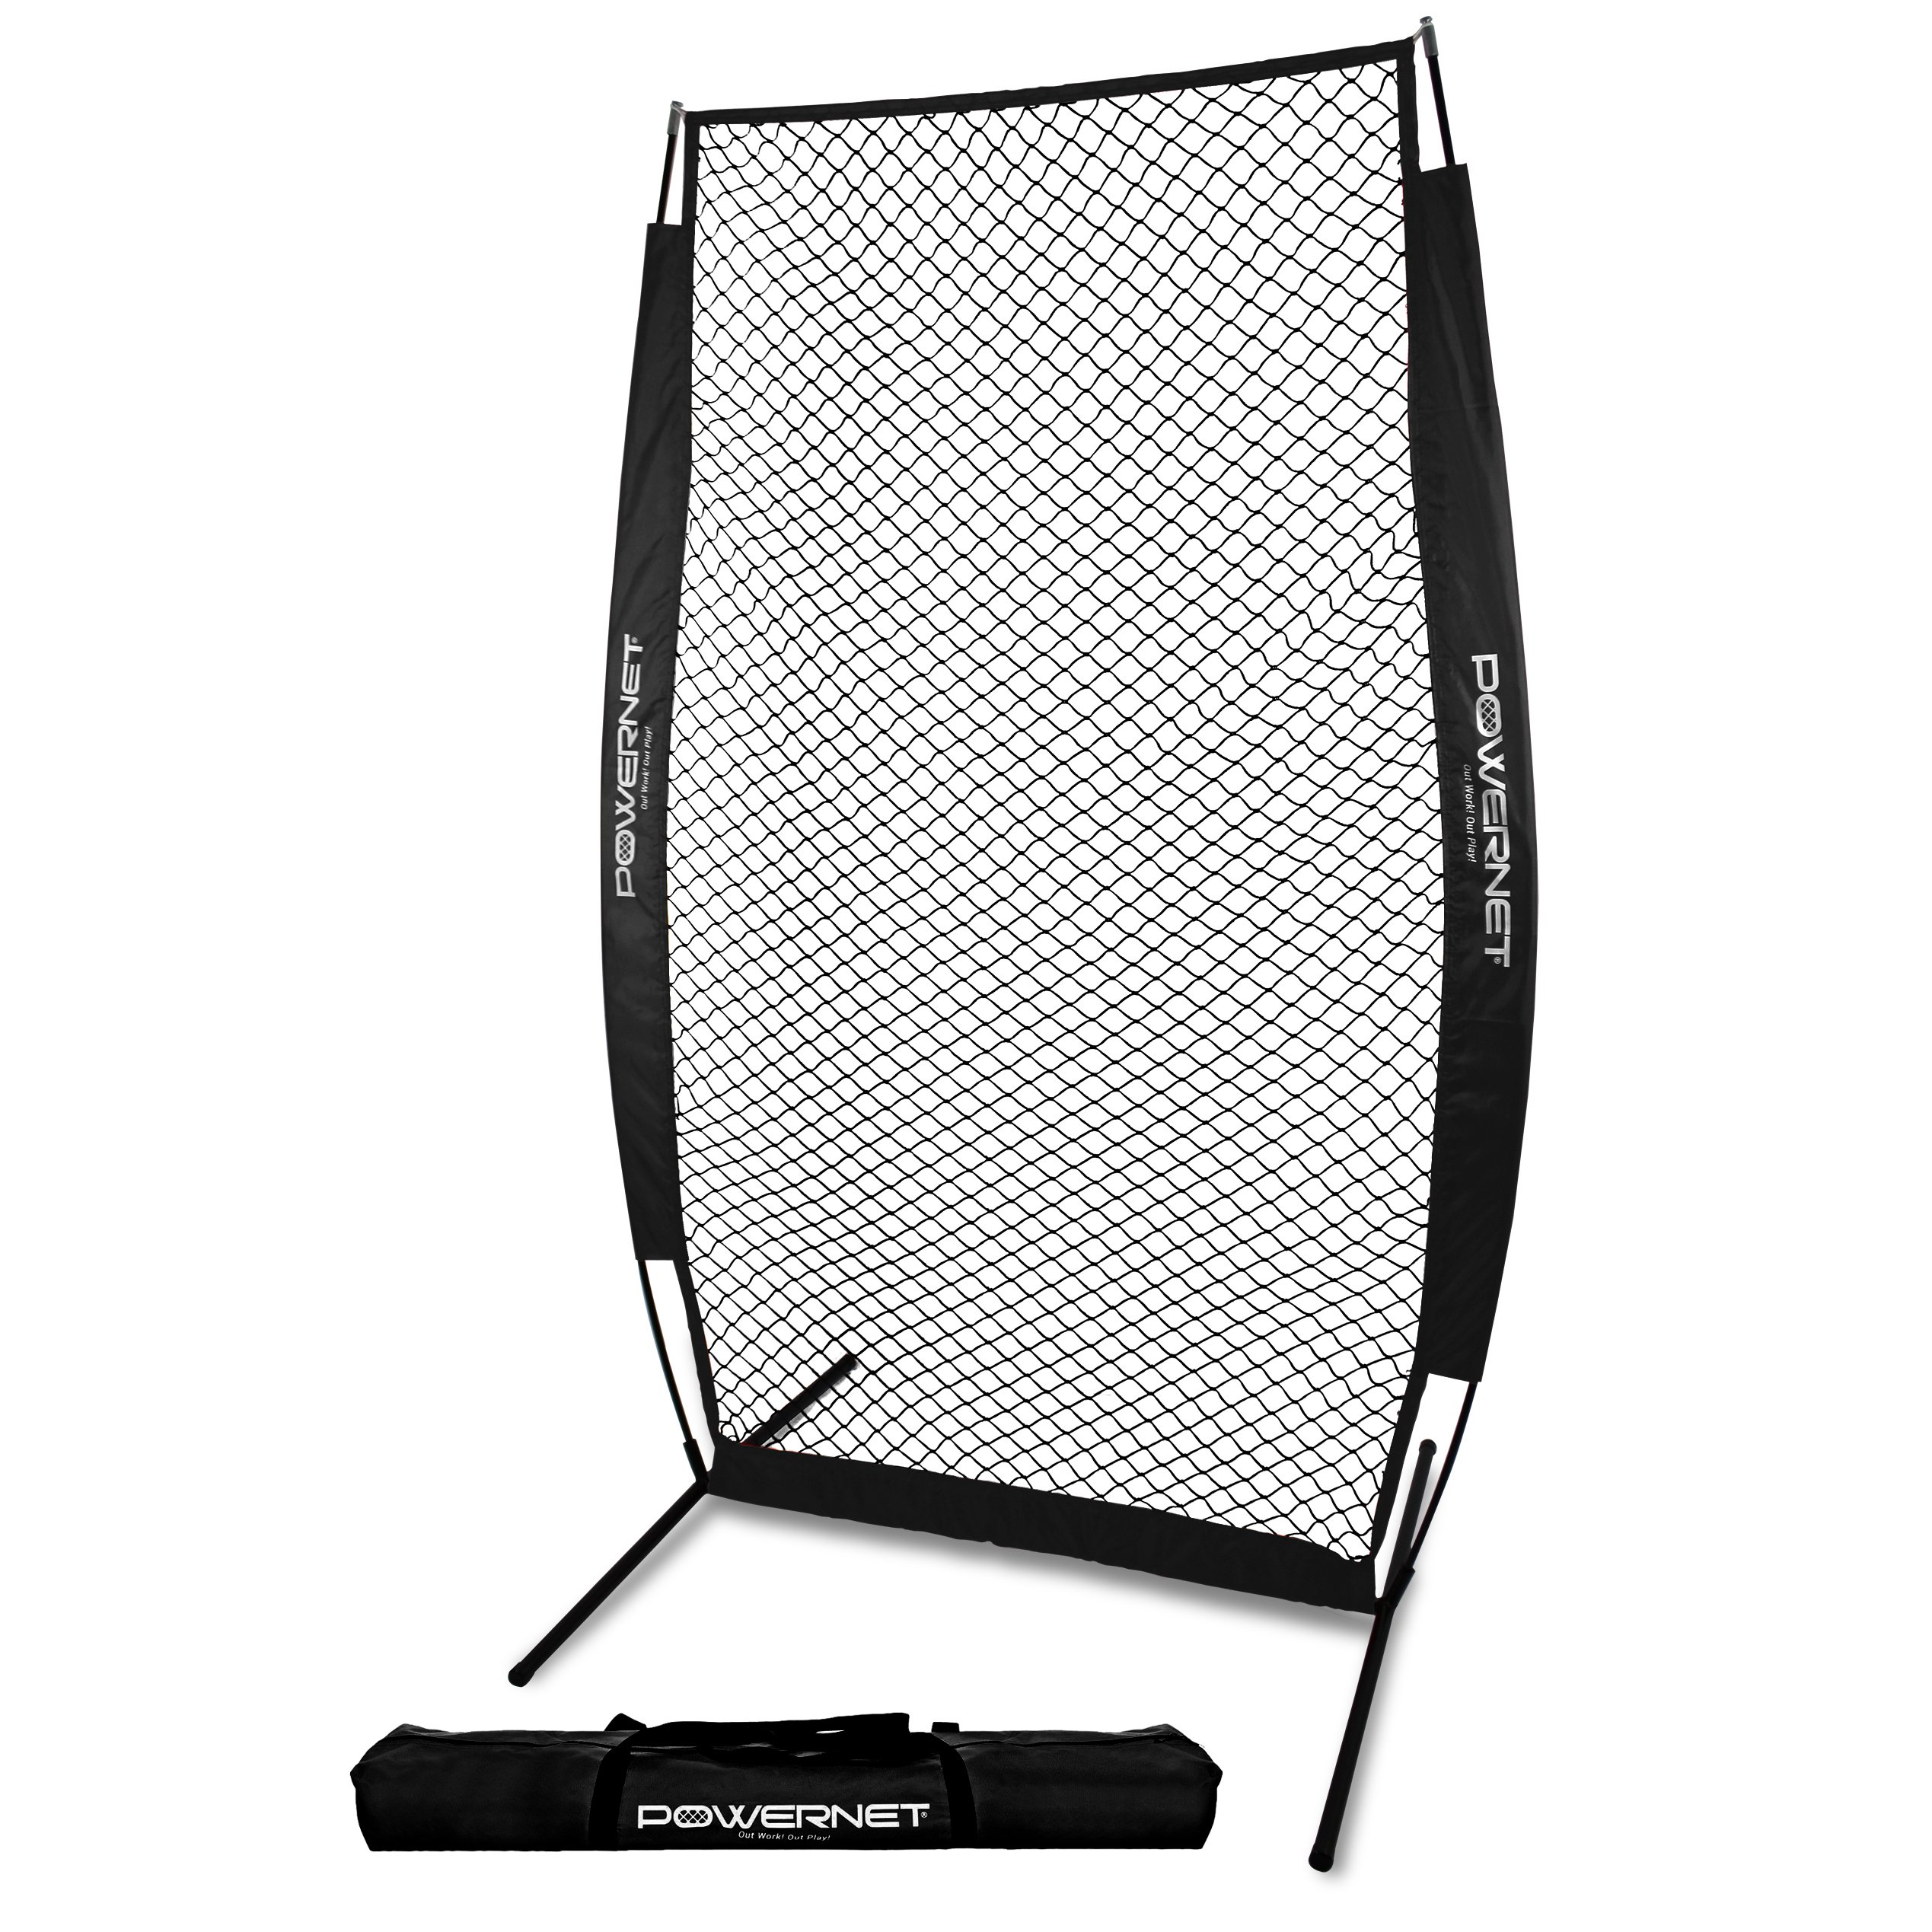 PowerNet I-Screen with Frame and Carry Bag (Black) | Portable Baseball Pitcher Protection at Batting Practice | Instant Player and Coach Protector from Line Drives Grounders | Heavy Duty Netting